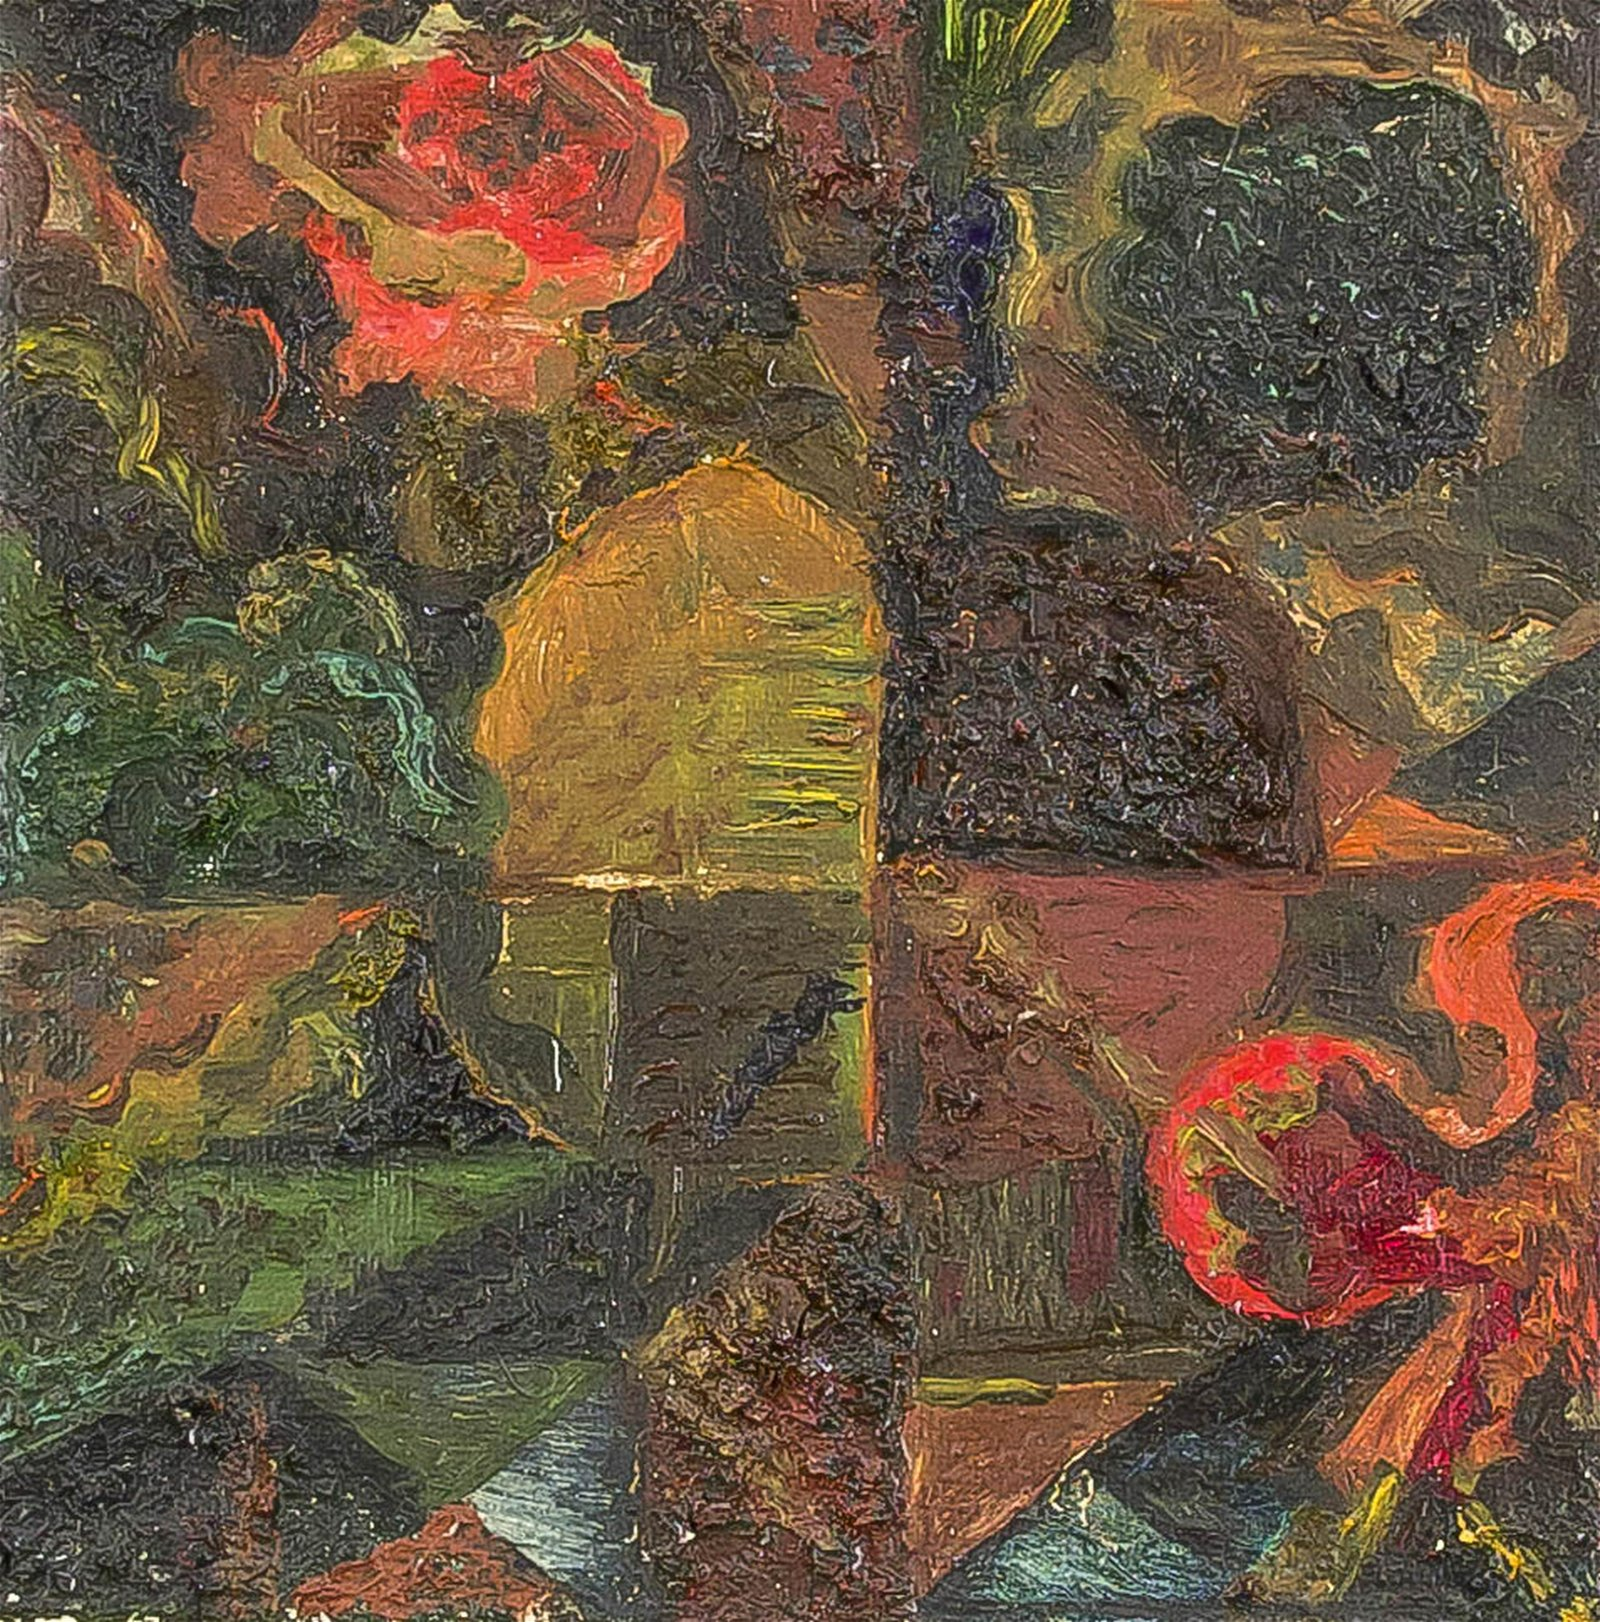 Two abstract or informal compositions by Russian